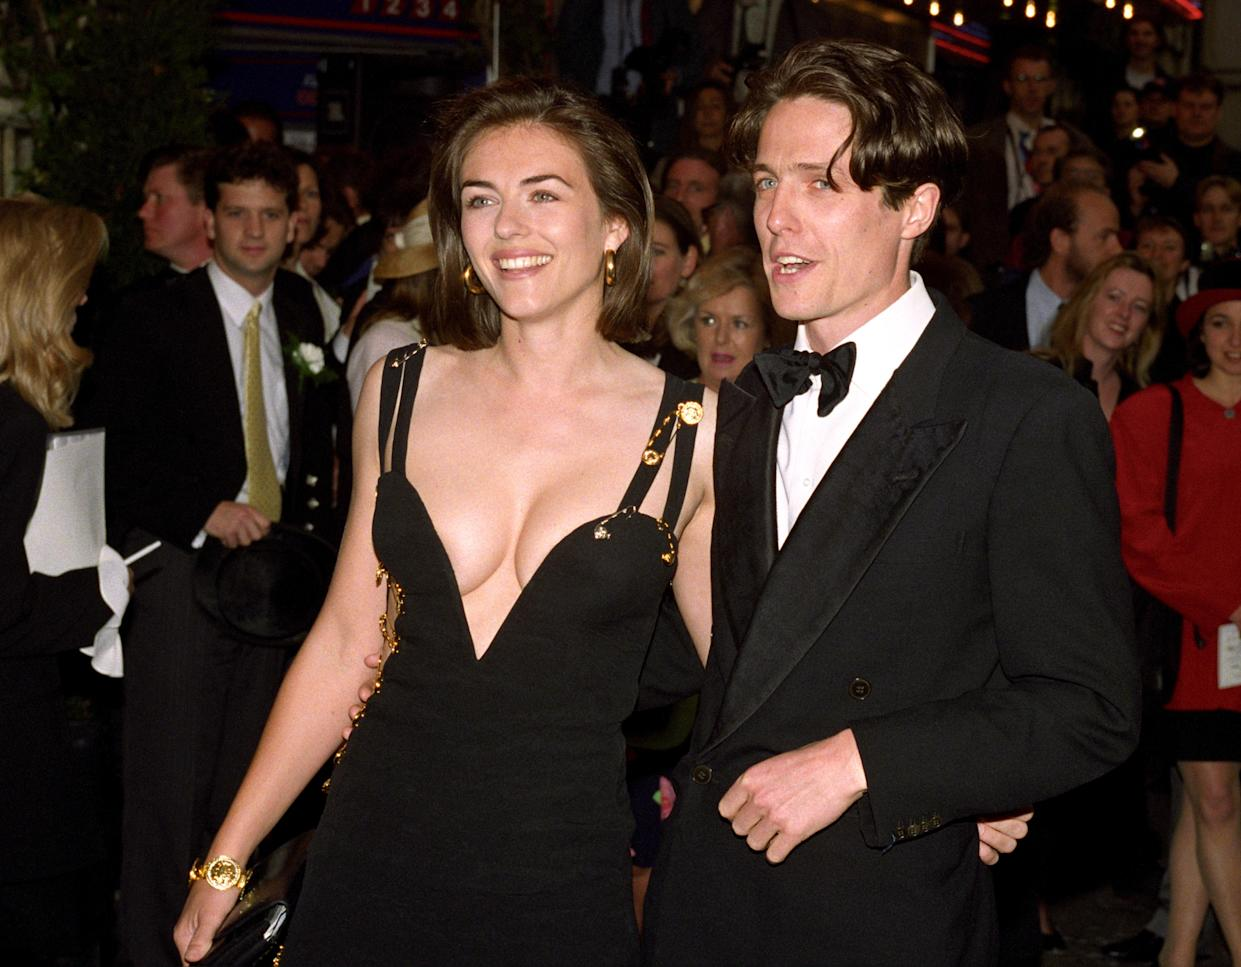 Actor Hugh Grant and his actress girlfriend Elizabeth Hurley arrive for the charity premiere of